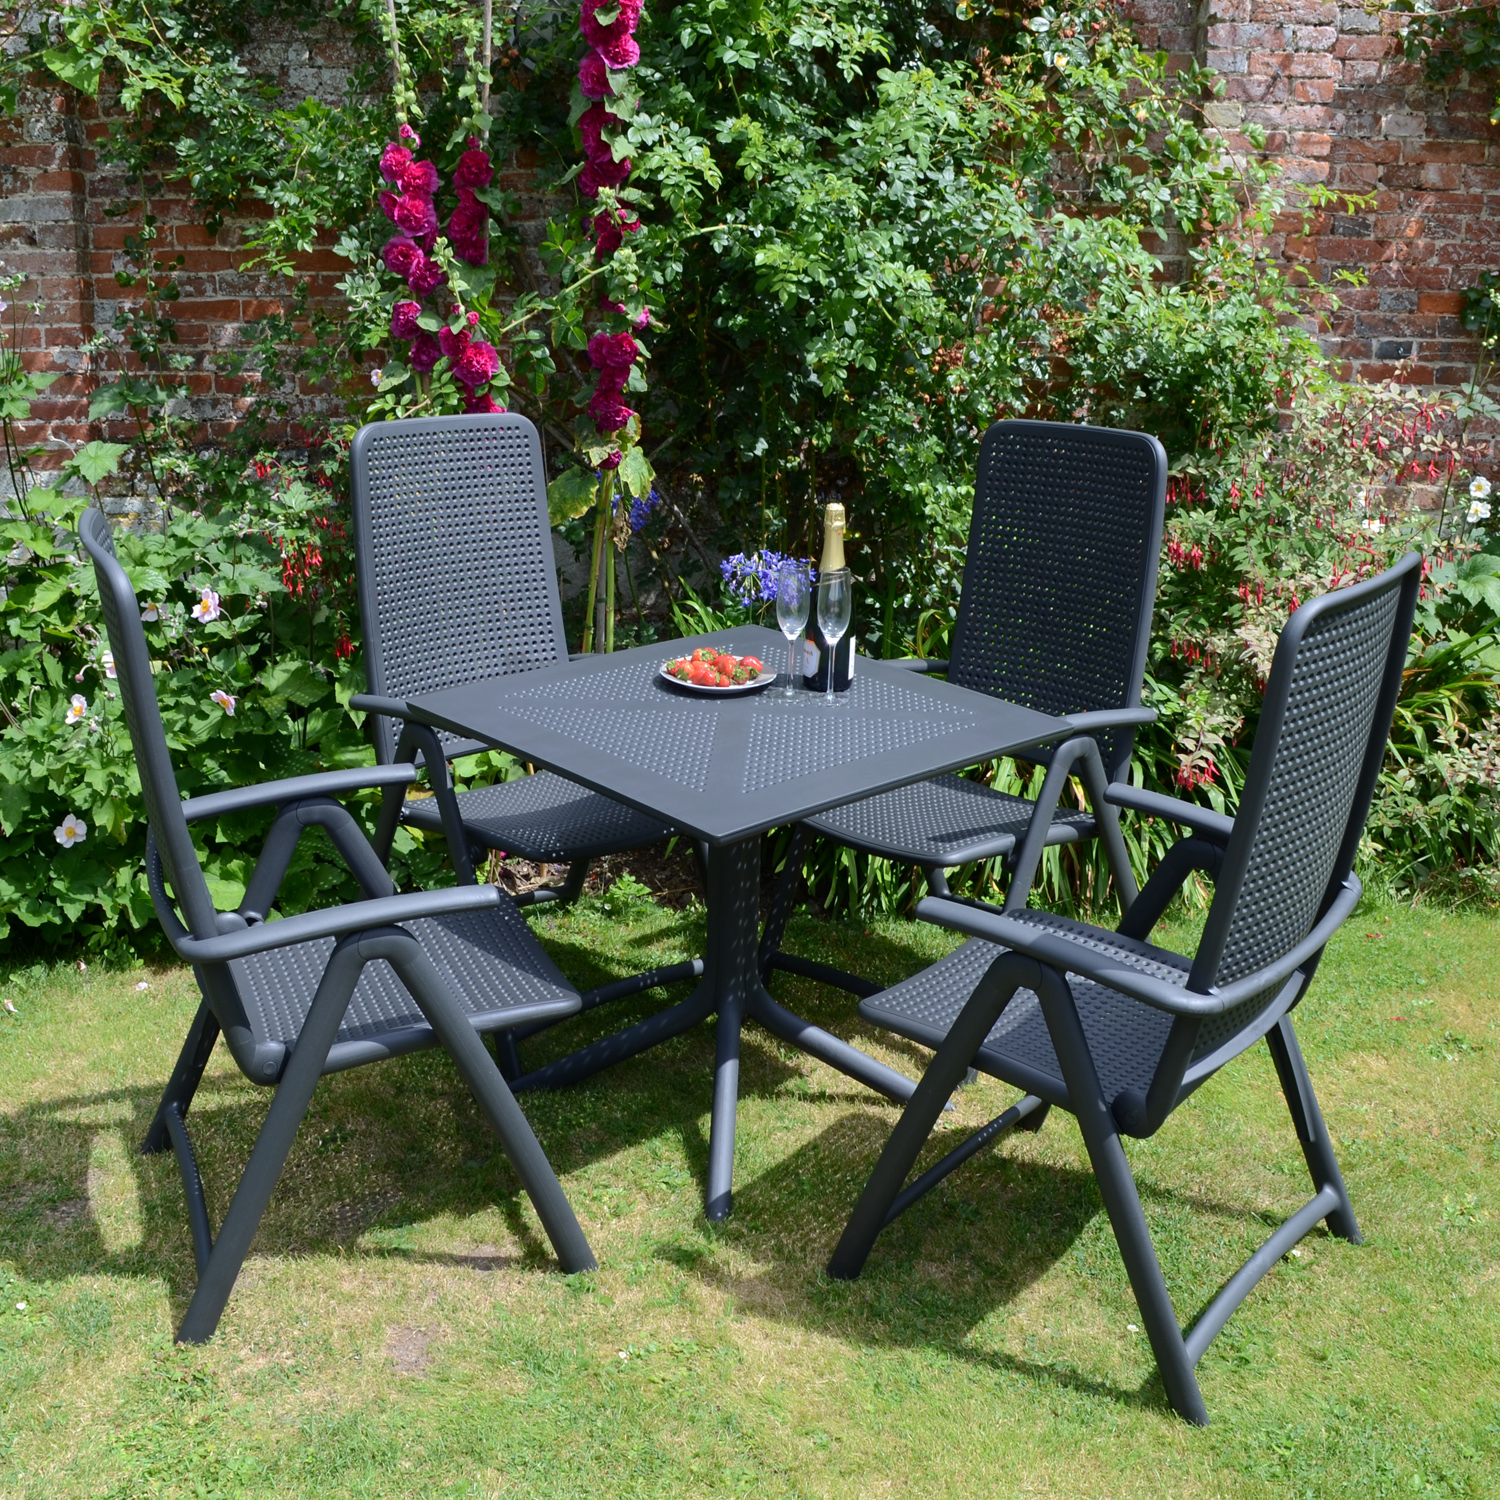 clip table anthracite europa leisure uk. Black Bedroom Furniture Sets. Home Design Ideas